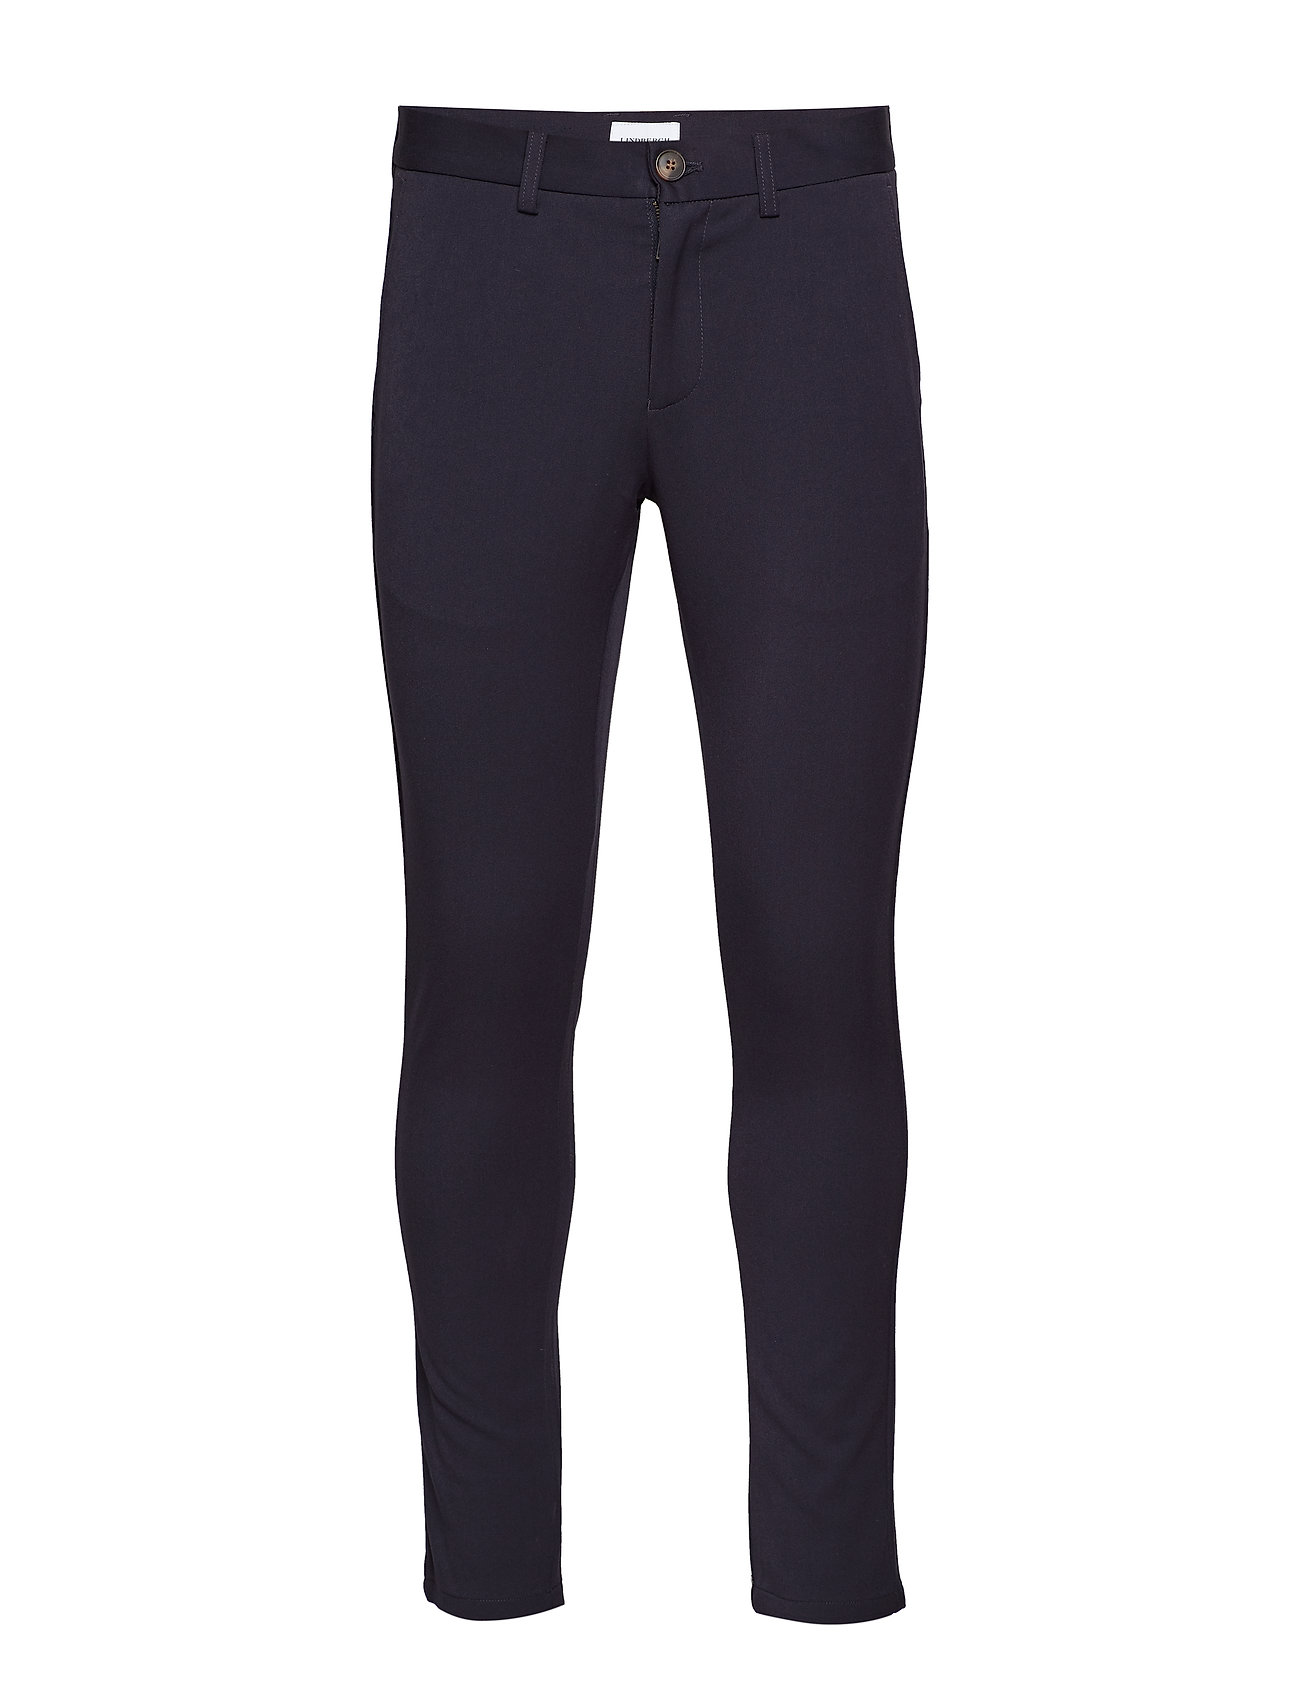 Lindbergh Casual stretch pant - NAVY